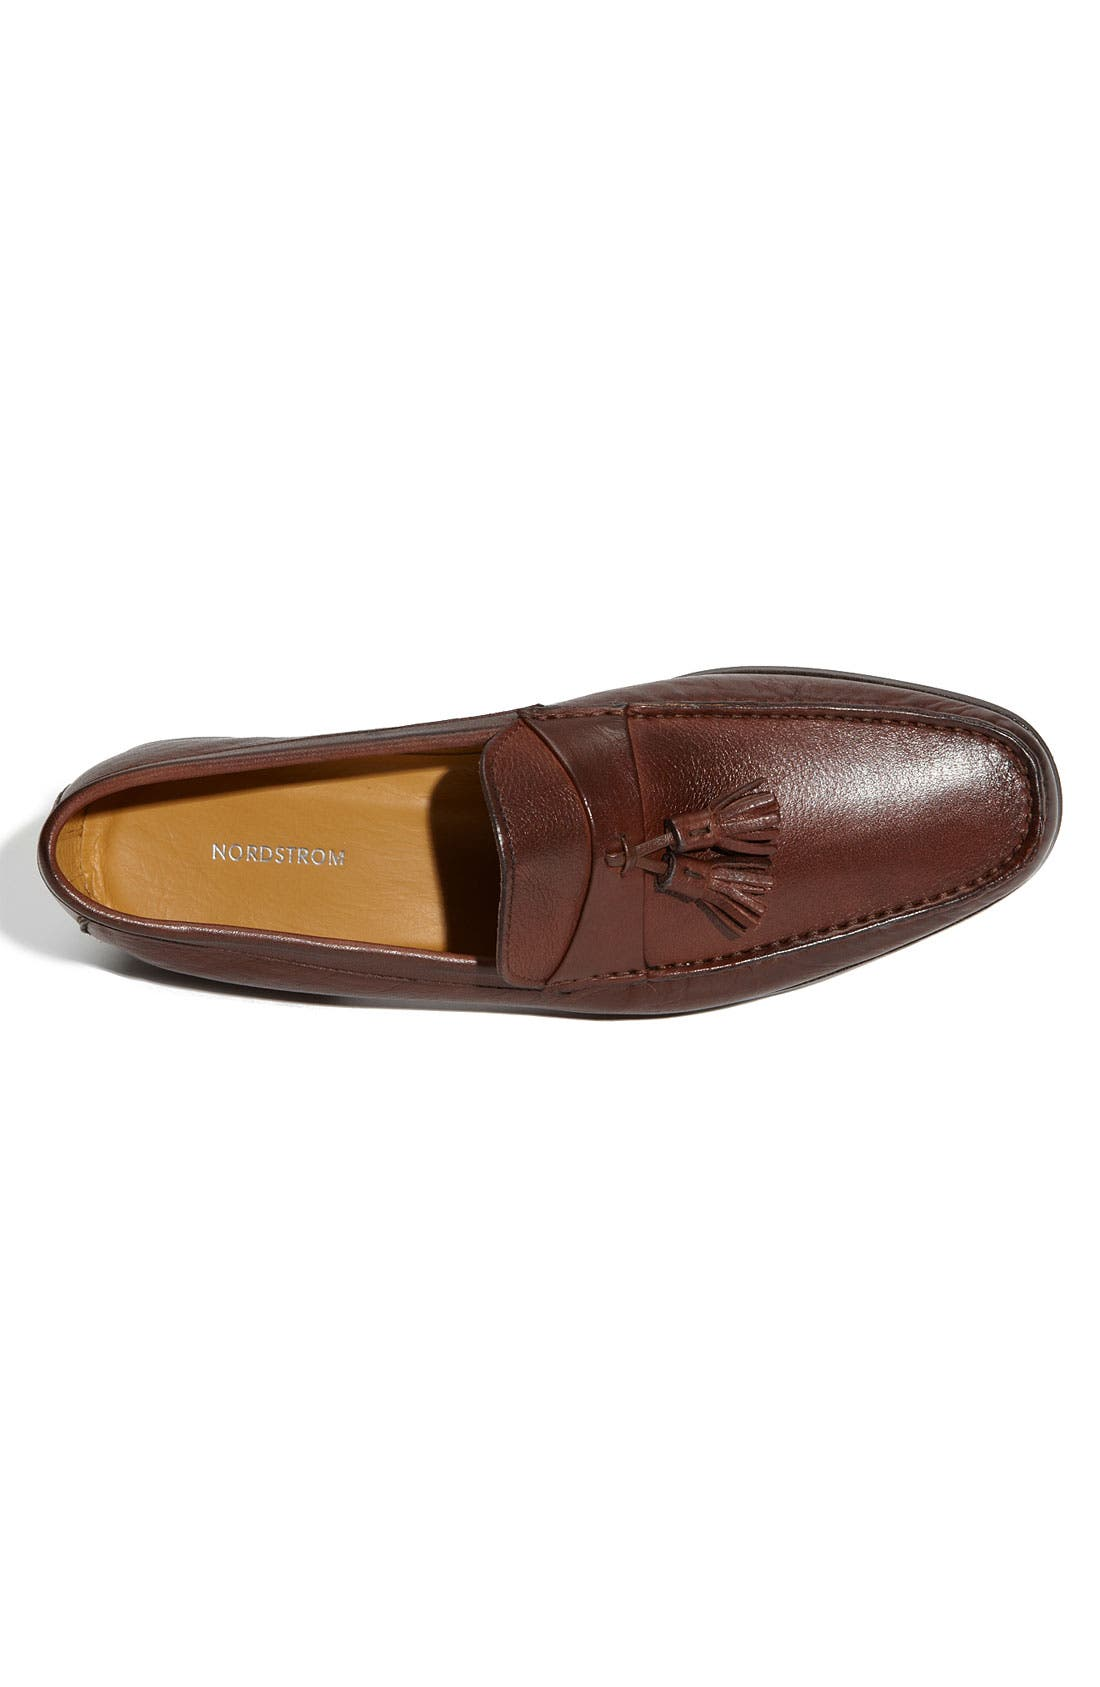 Alternate Image 3  - Nordstrom 'Alex' Loafer